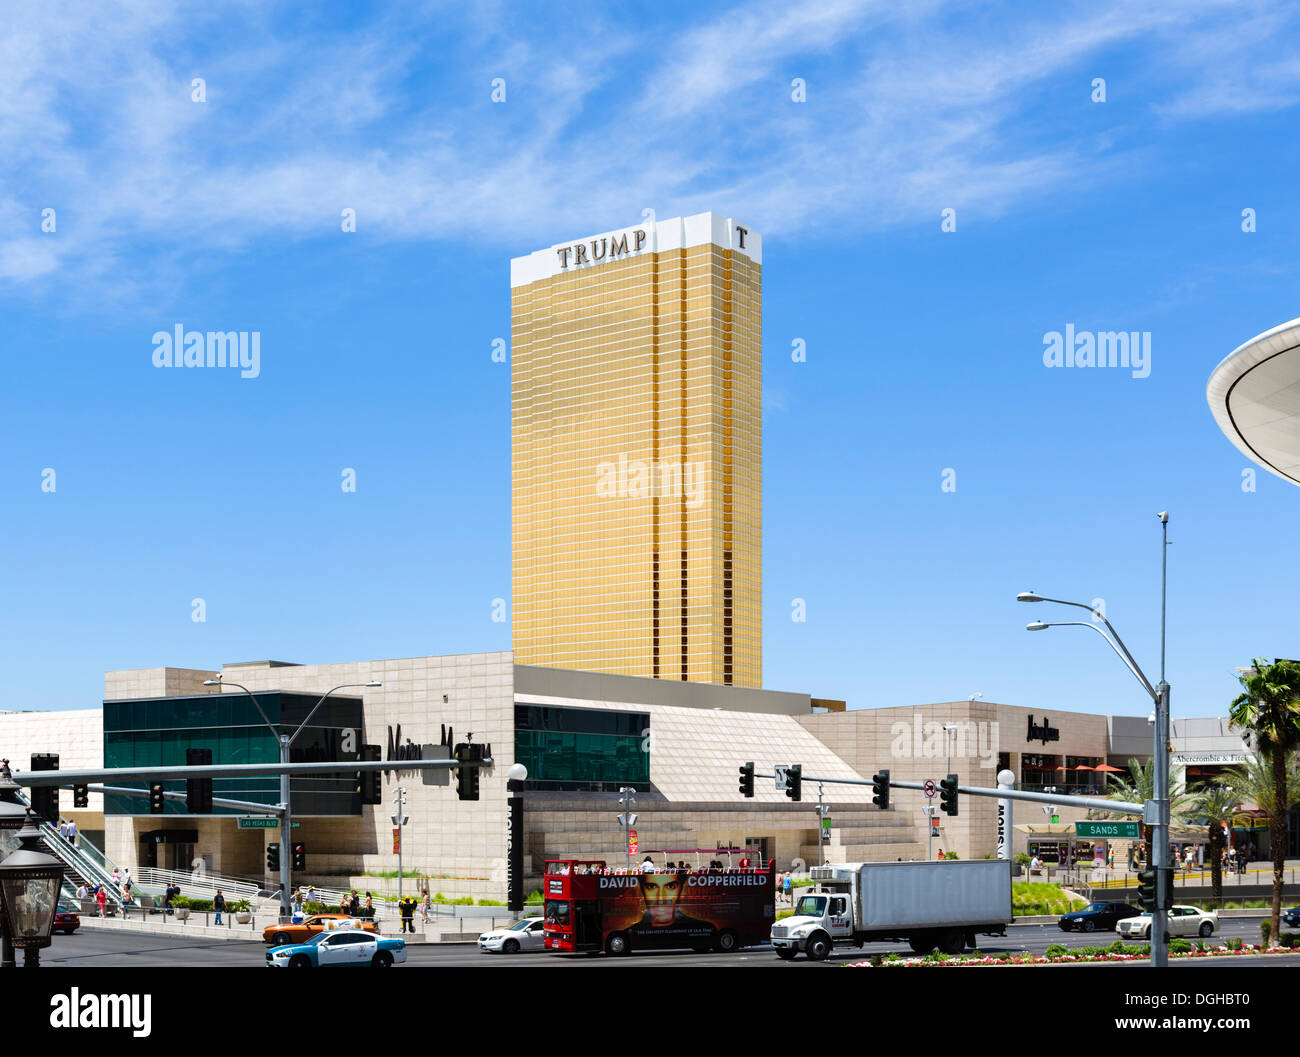 The Trump Hotel and Casino with Fahion Show Mall in foreground, Las Vegas, Nevada, USA Stock Photo